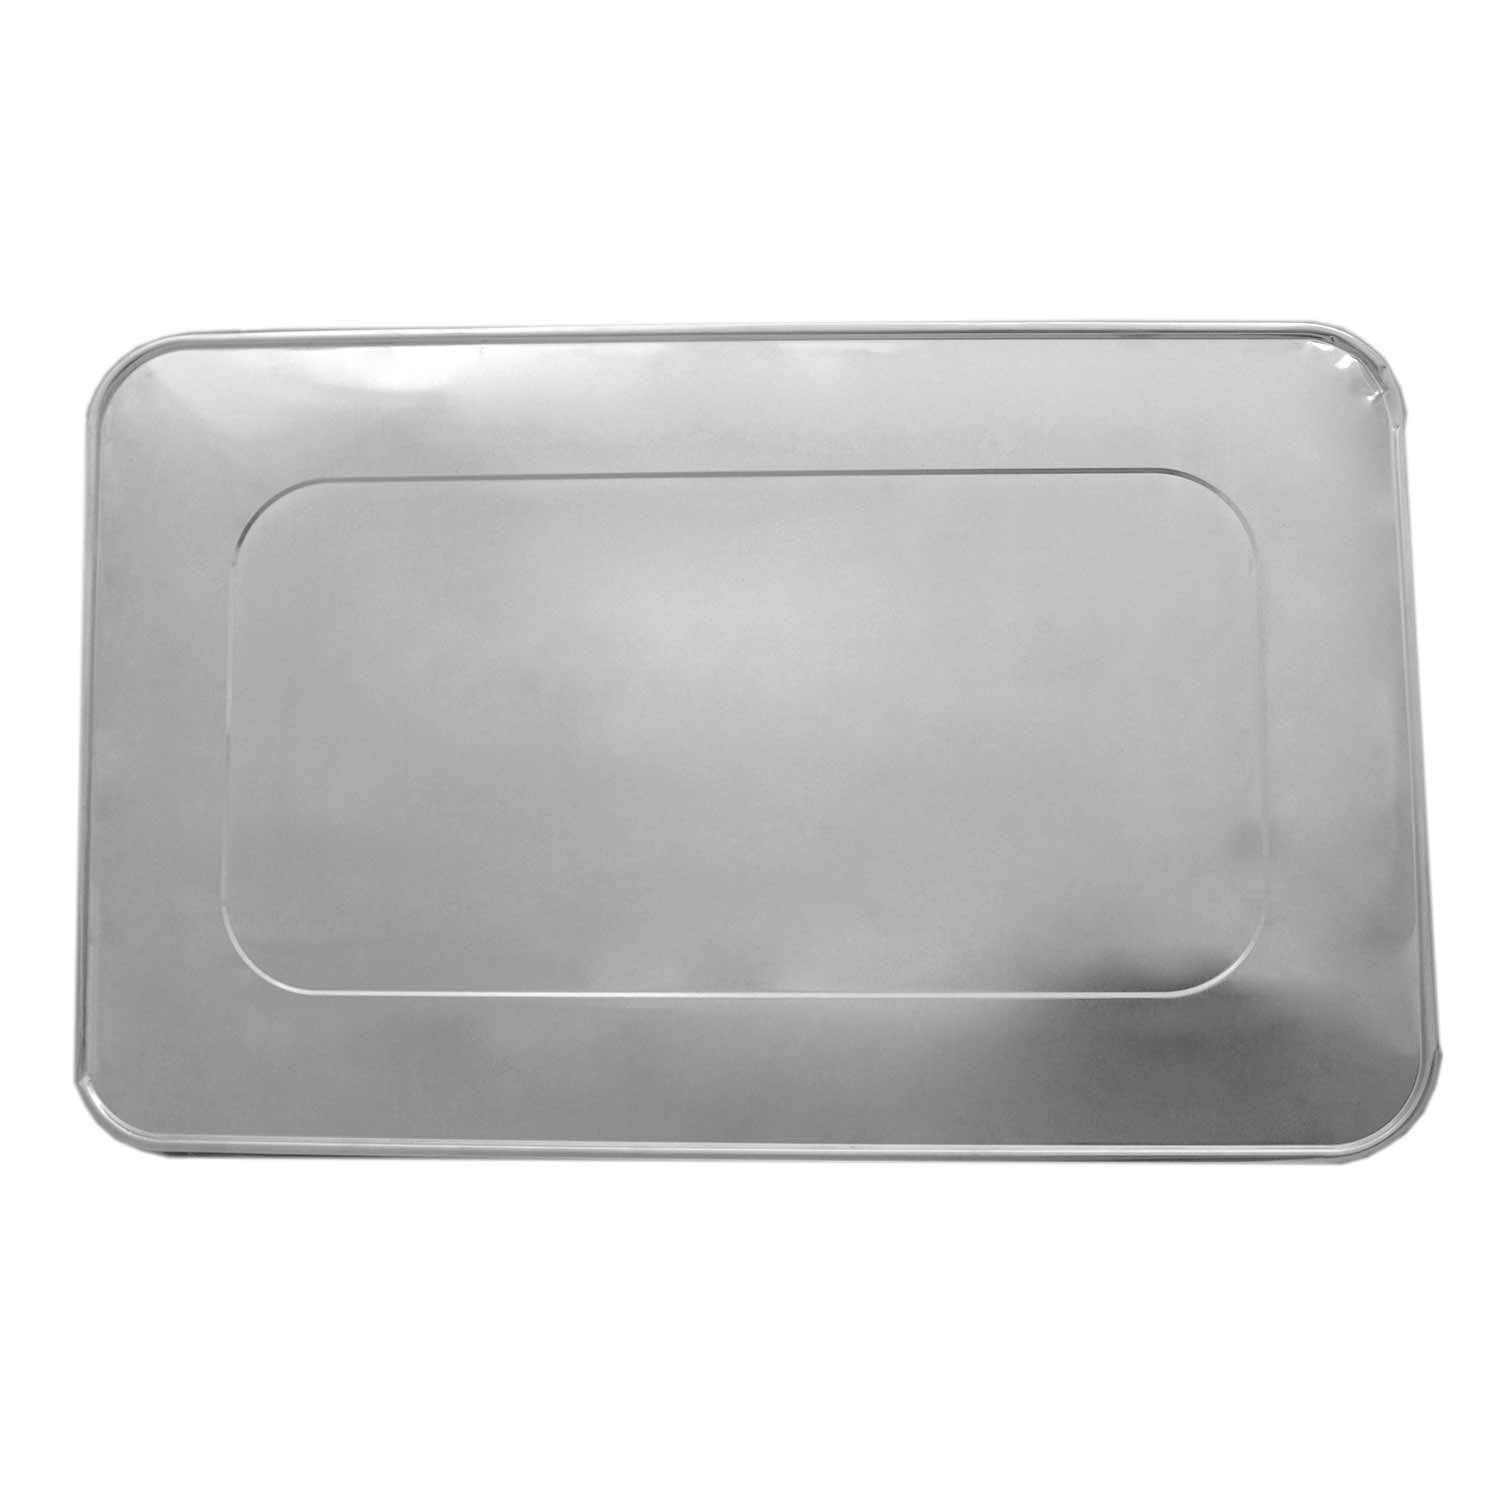 Case of 50 Party Essentials F2050 Full Size Aluminum Foil Lid for Steam Table Pan